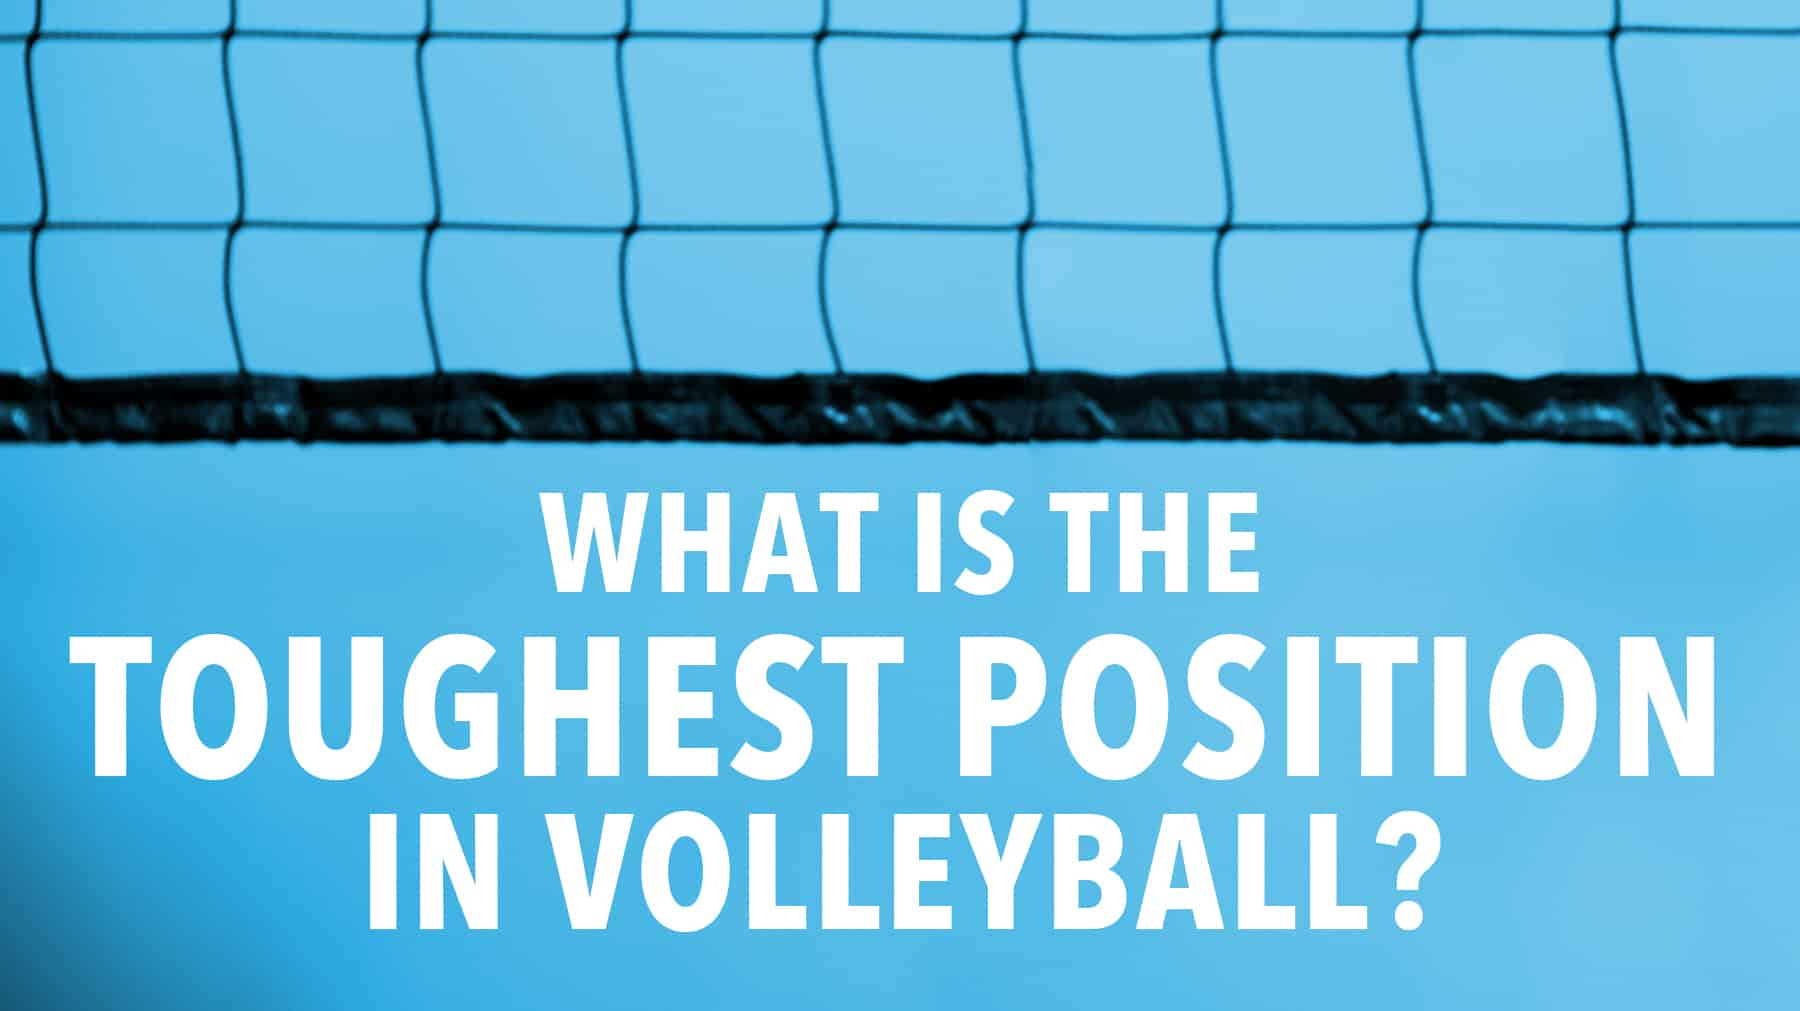 The Toughest Position In Volleyball